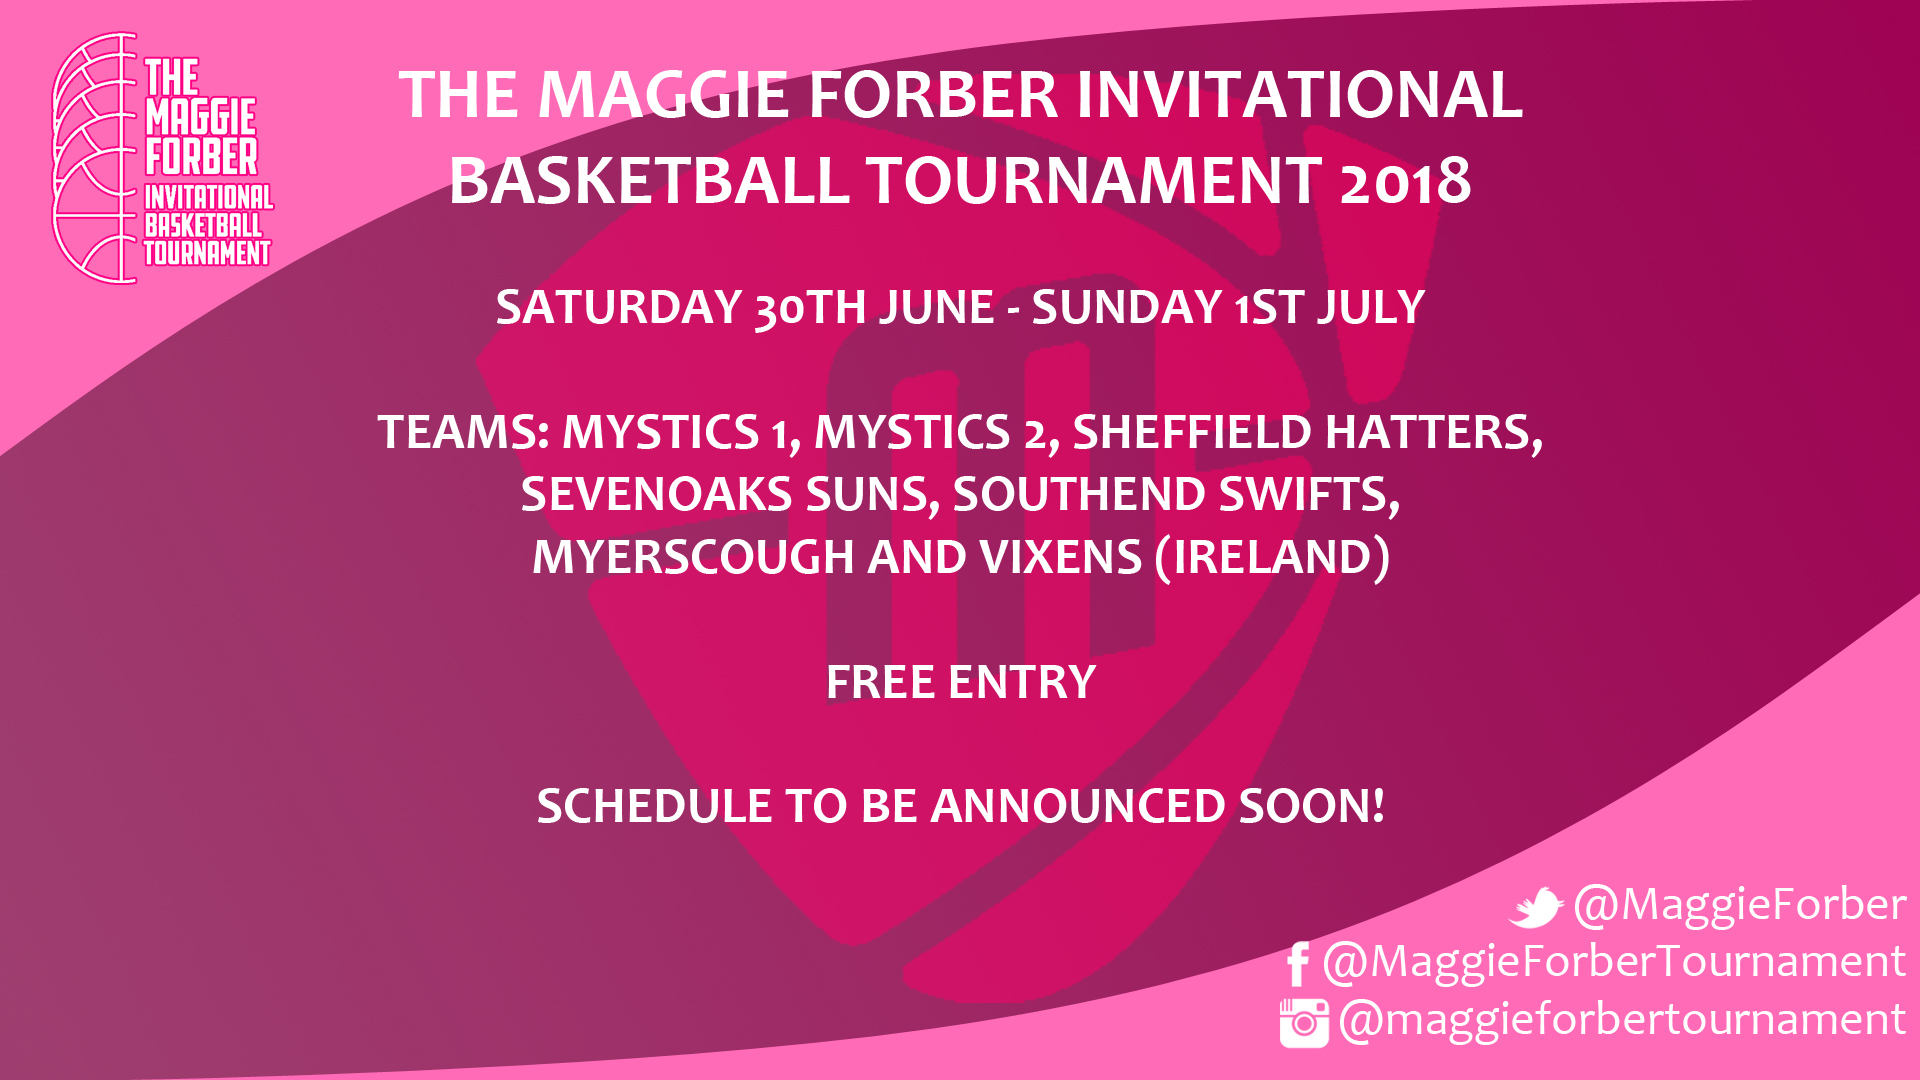 Maggie Forber Tournament 2018 Teams: Mystics 1, Mystics 2, Sheffield Hatters, Sevenoaks Suns, Southend Swifts, Myerscough and Vixens (Ireland) Saturday 30th June - Sunday 1st July 2018 Free Entry